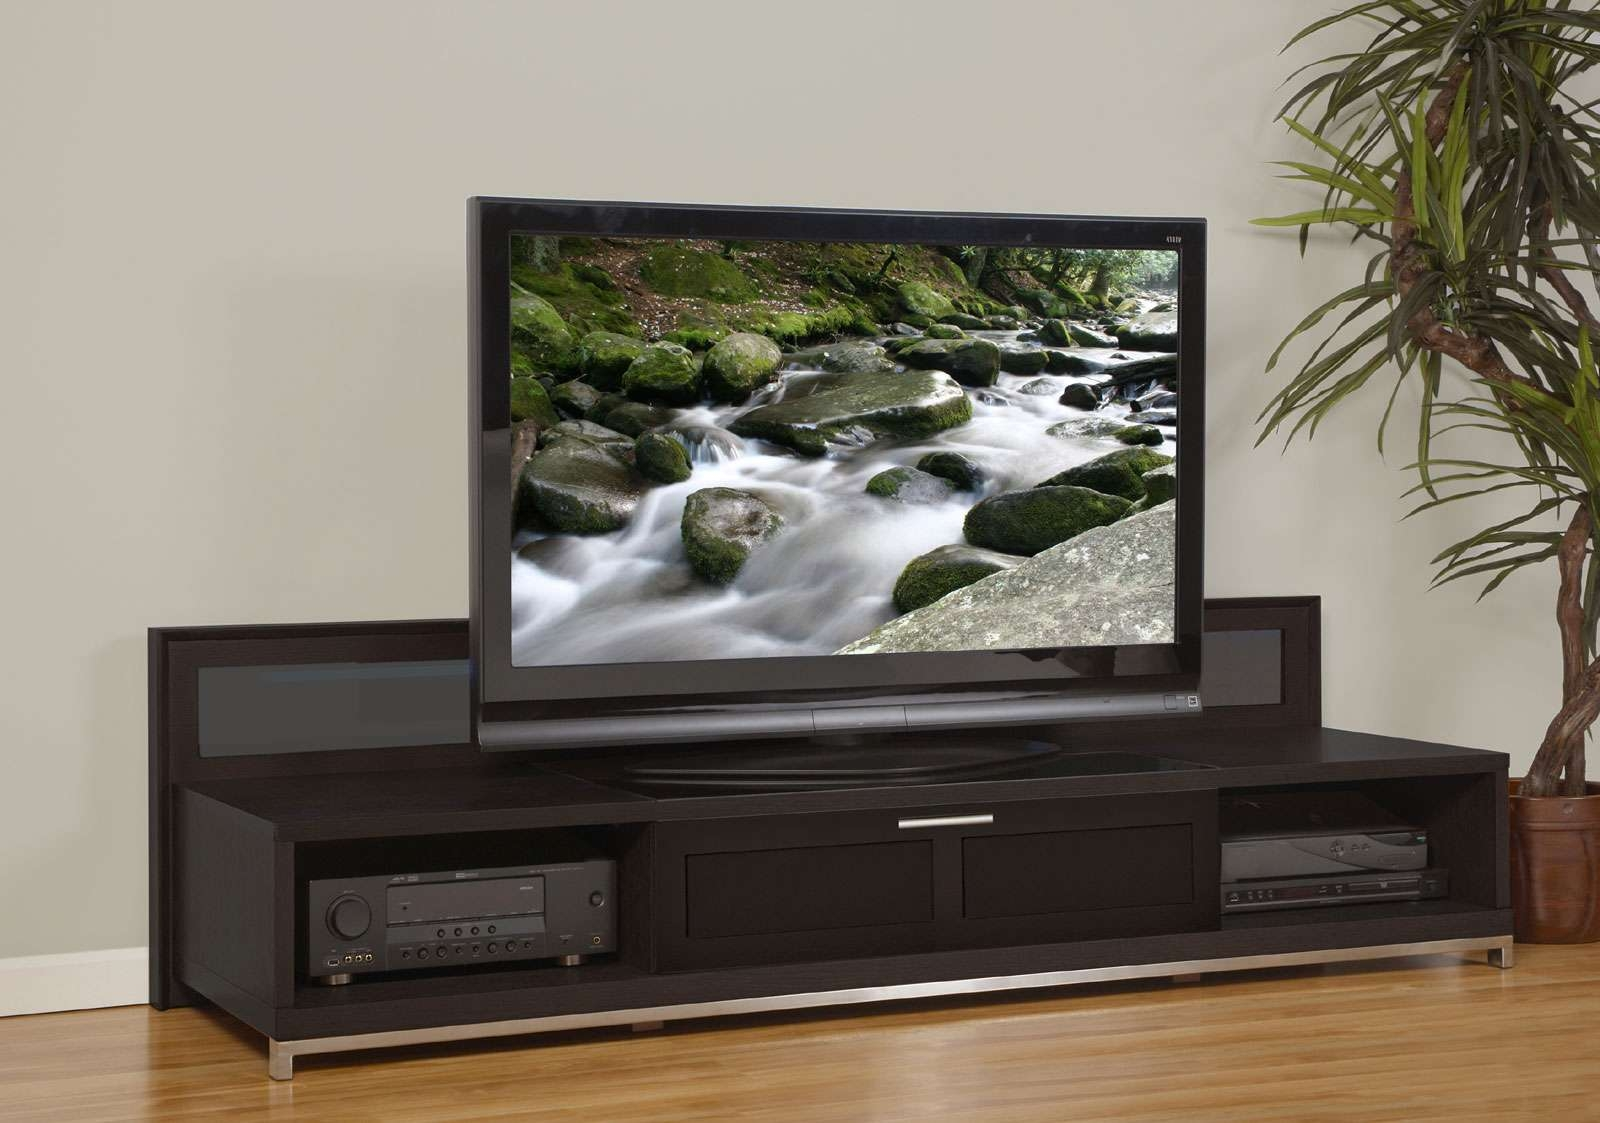 Dark Brown Stained Mahogany Wood Low Tv Stand With Cast Iron Intended For Low Corner Tv Stands (View 15 of 15)